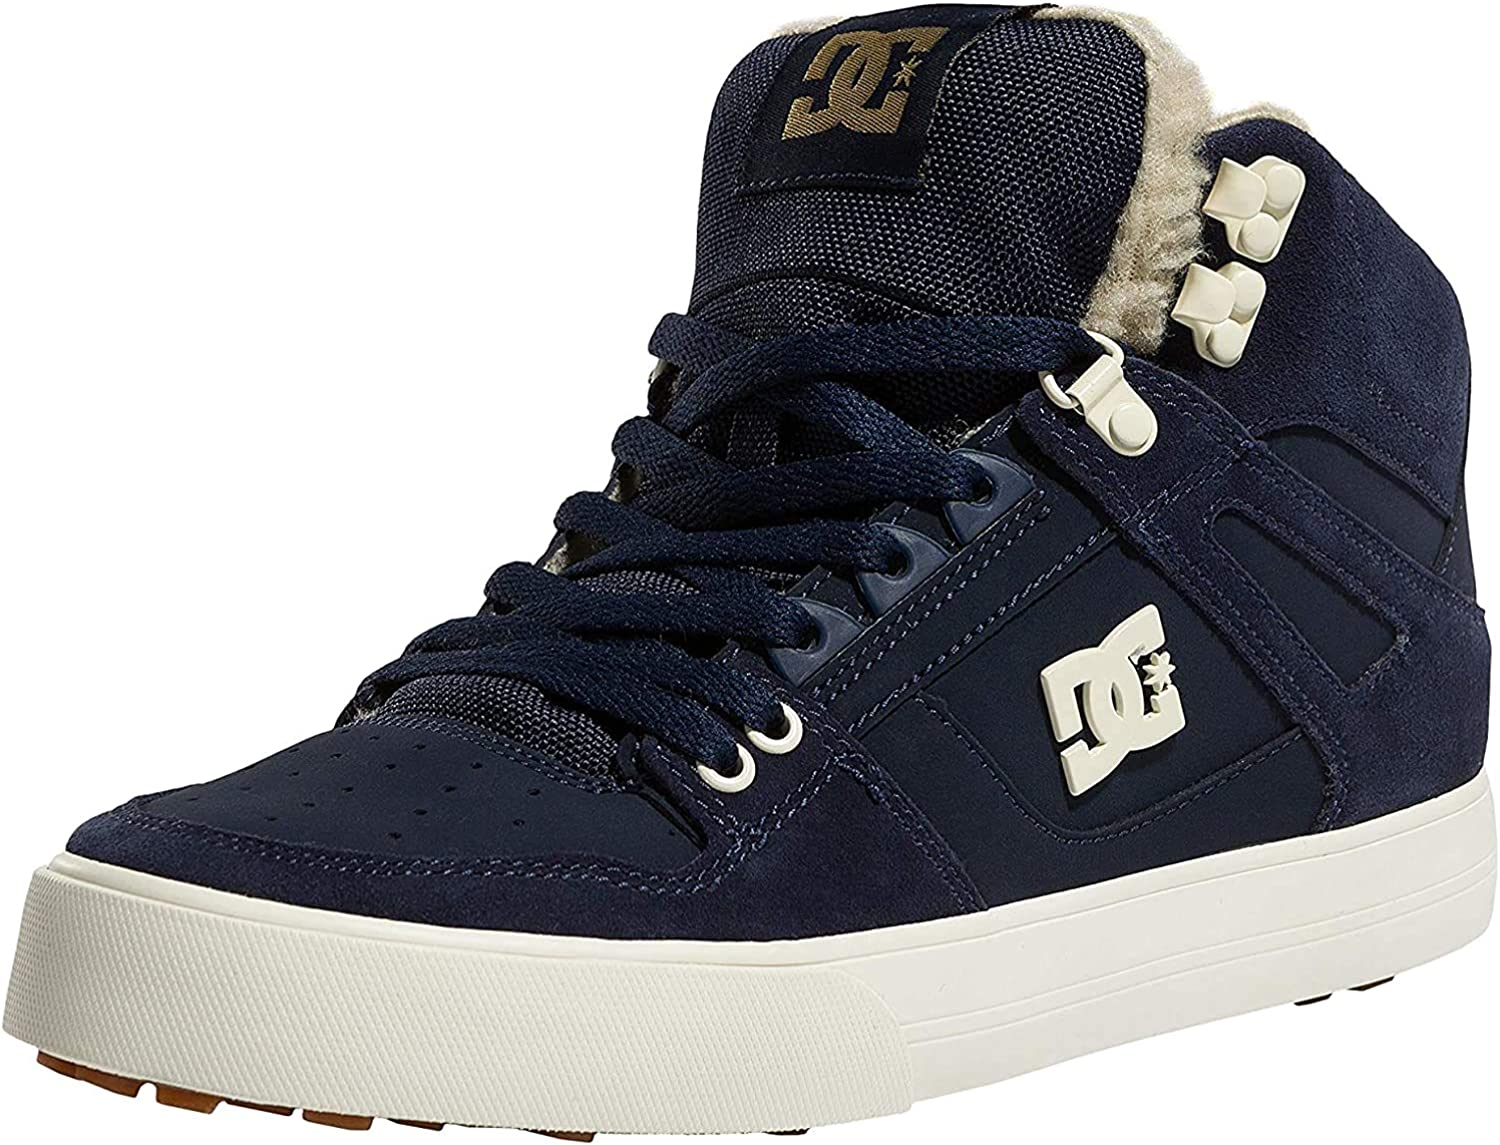 DC Navy-Khaki Pure Wc US Sherpa Lined Winter Boots